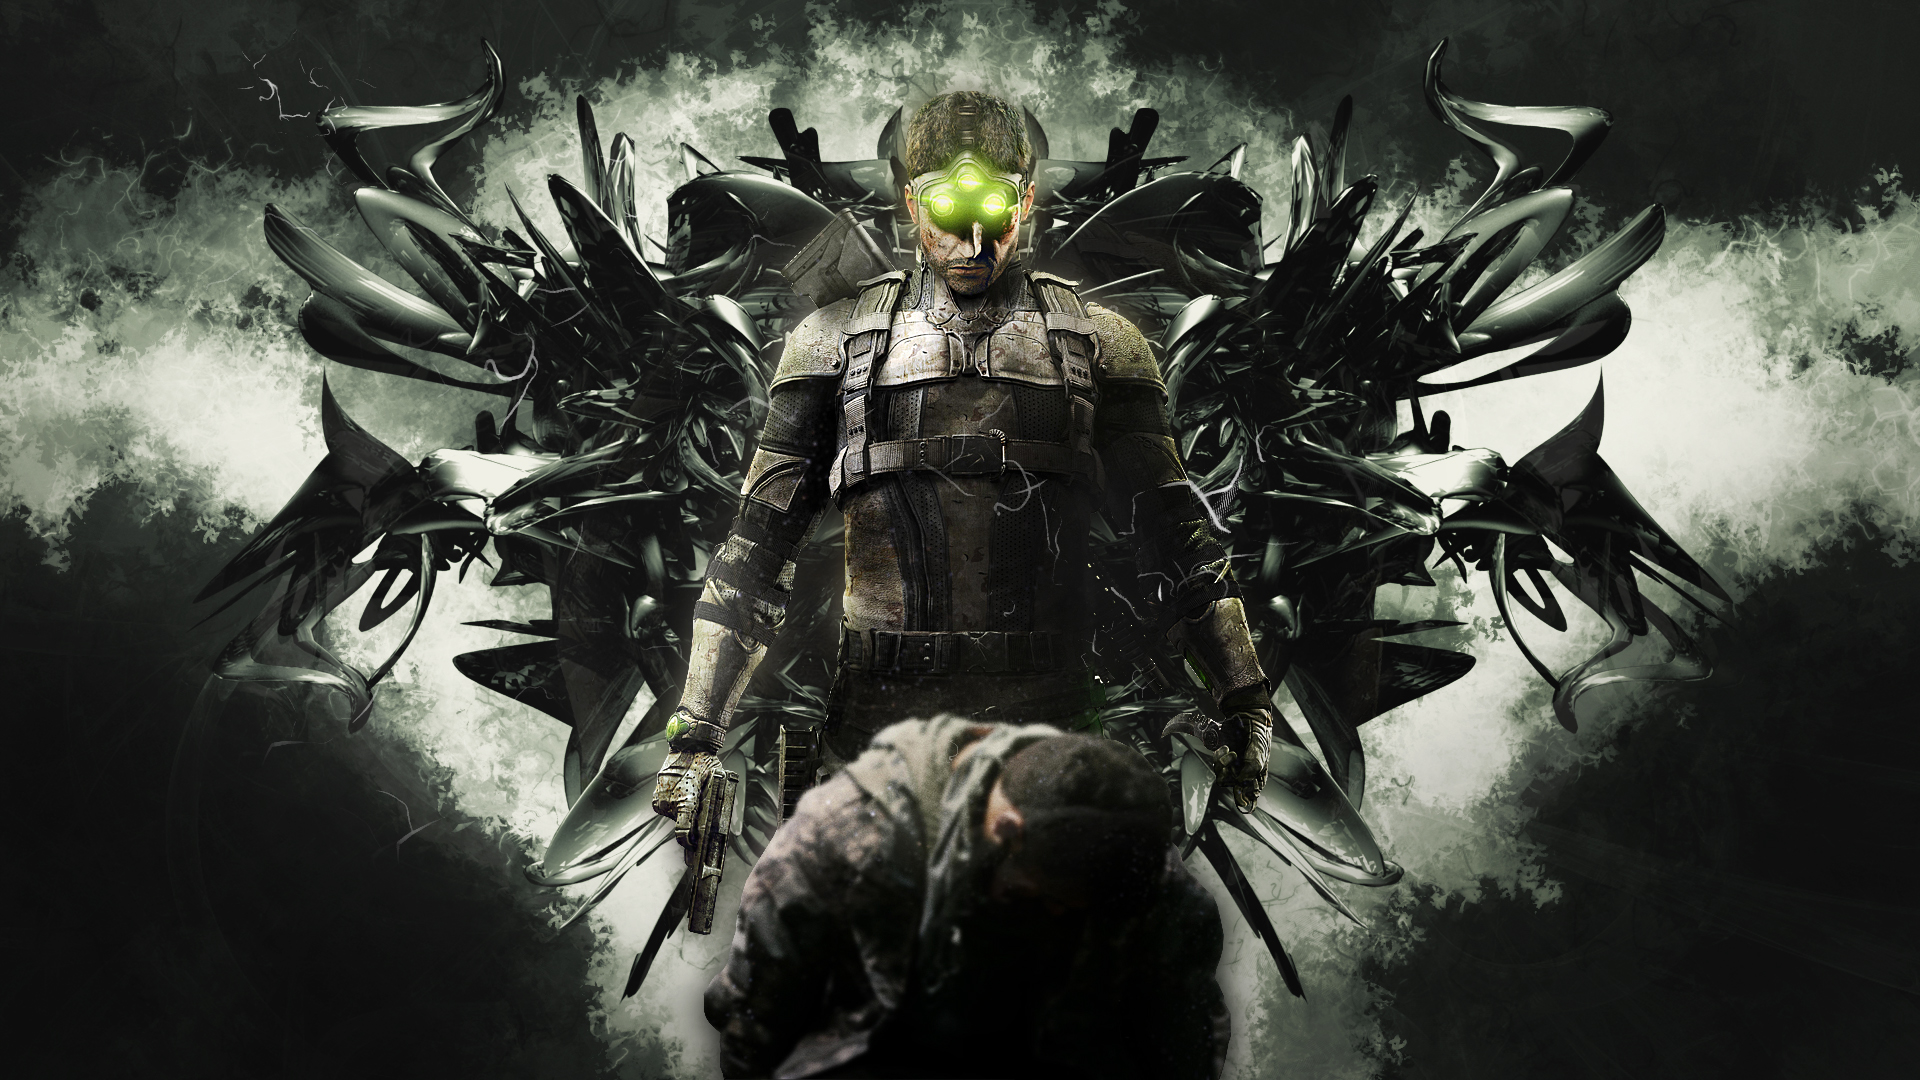 splinter cell blacklist wallpaper A2